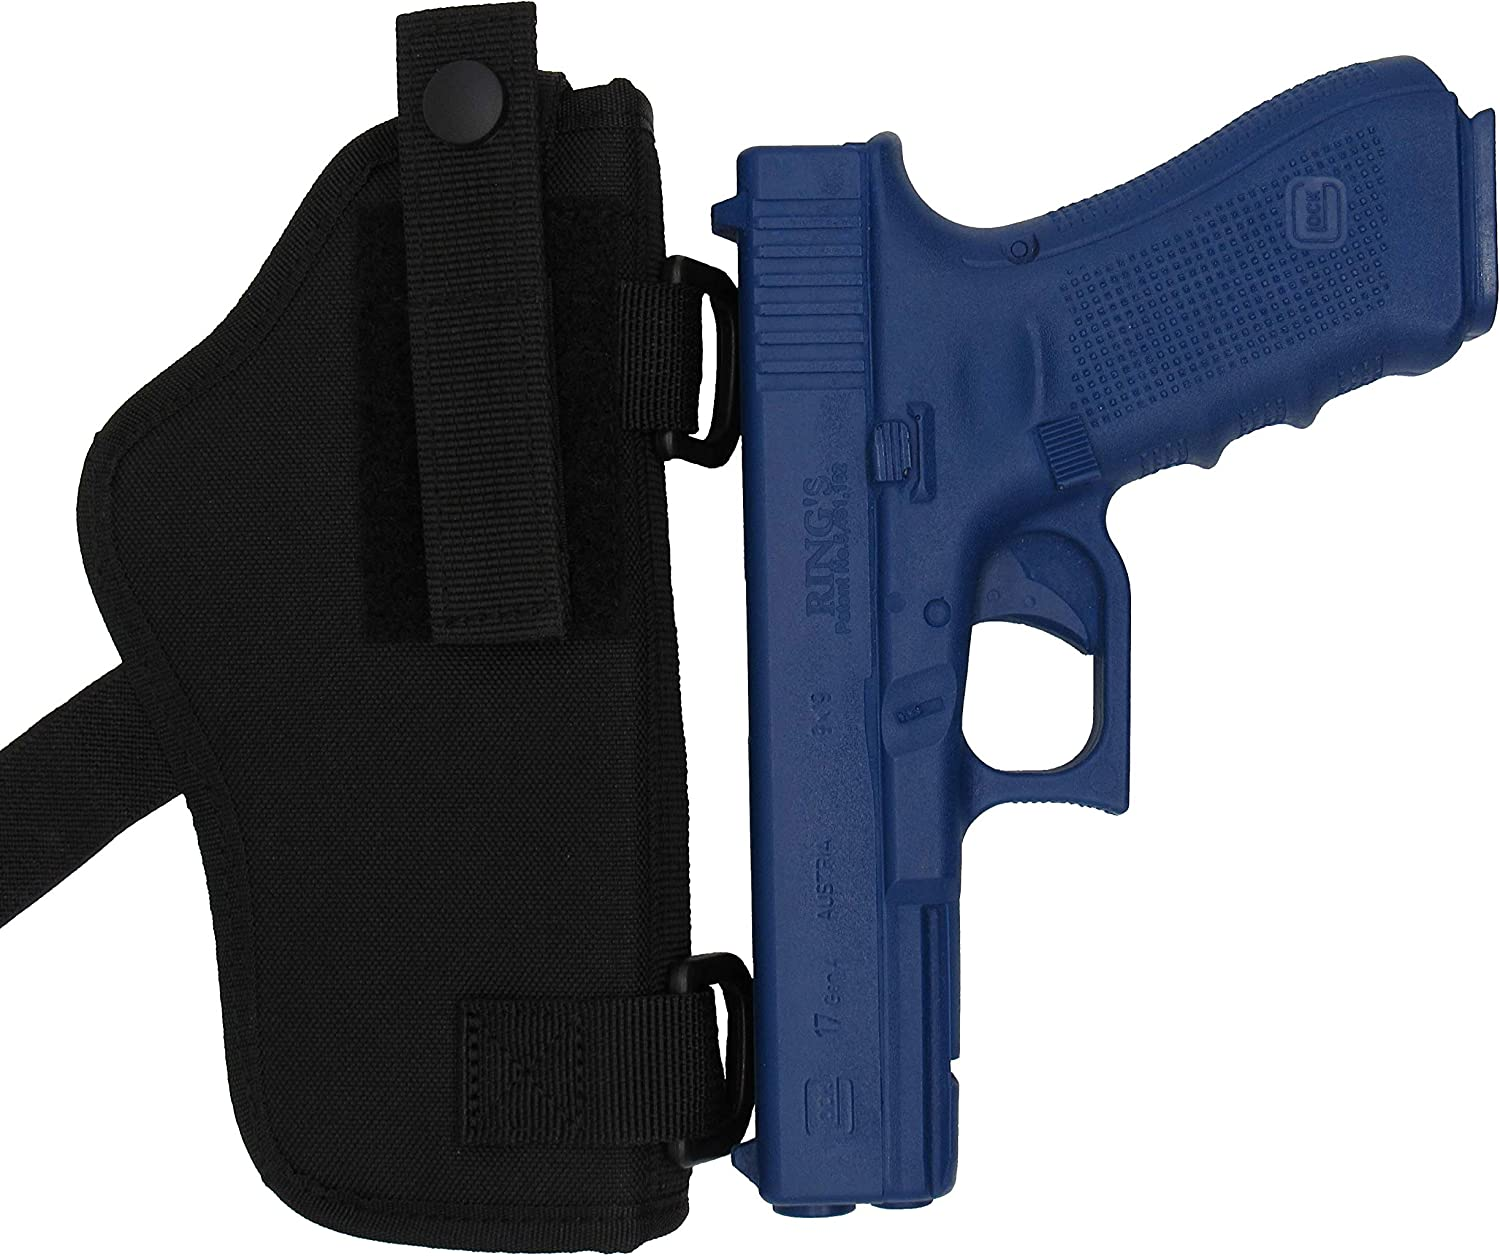 10mm 9mm KING HOLSTER Shoulder Holster fits ROCK ISLAND 1911 45 ACP 40 S/&W